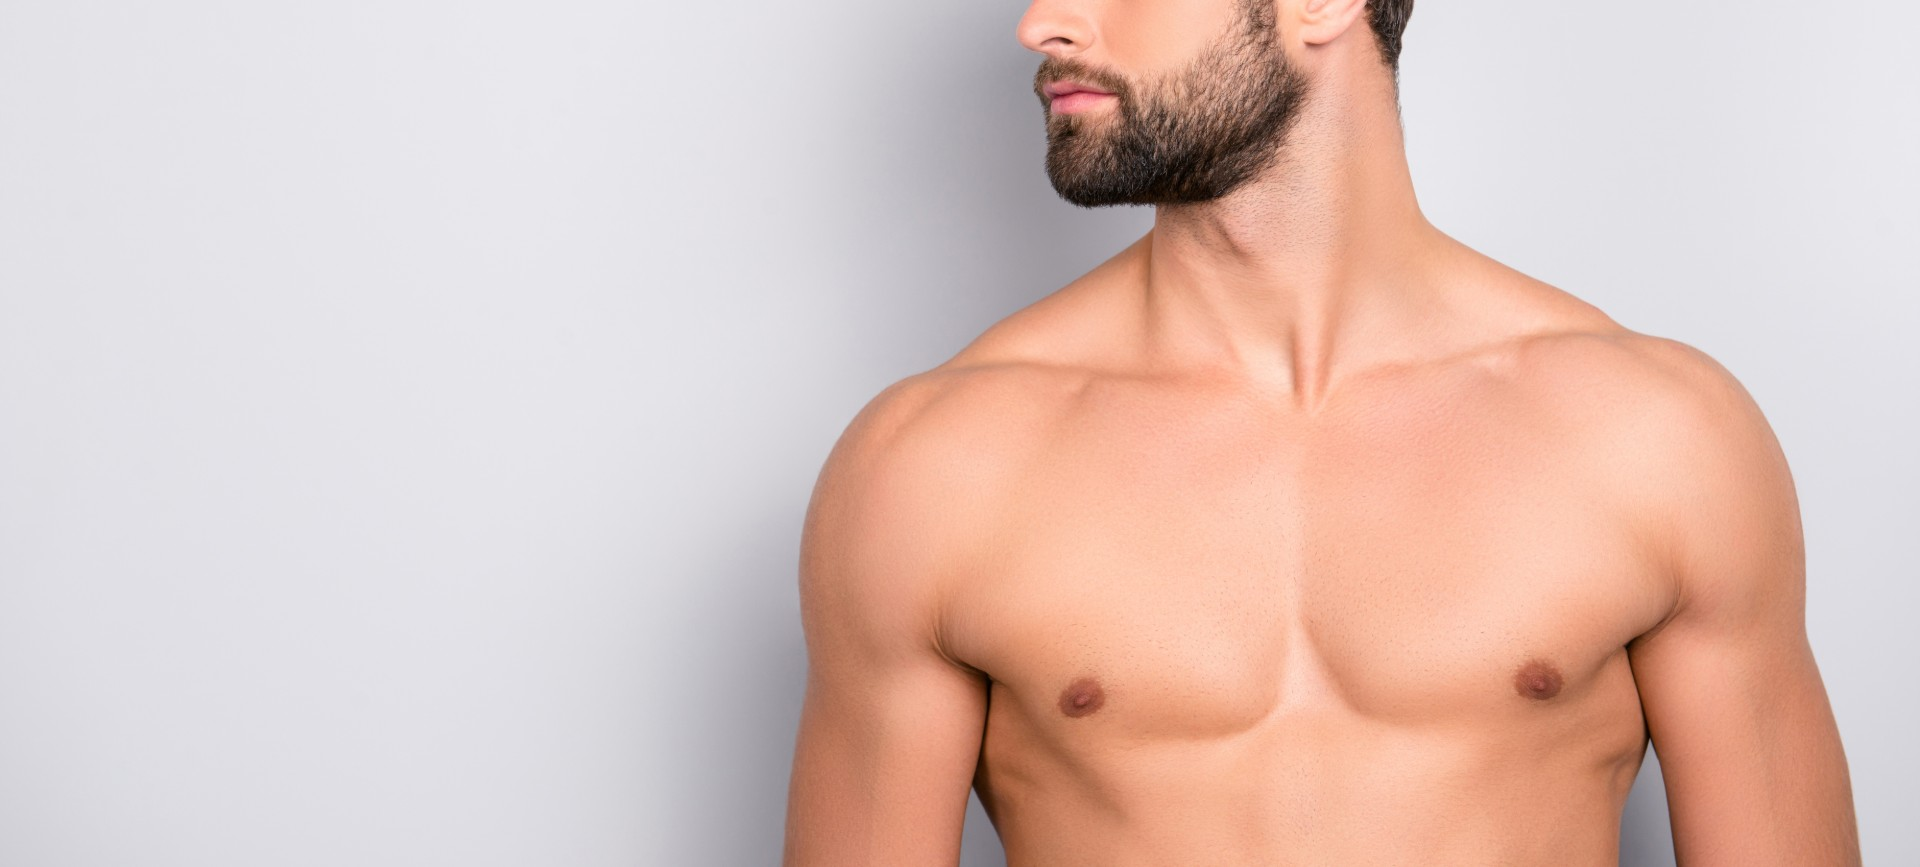 Male Chest Reduction Gynaecomastia Parkside Hospital